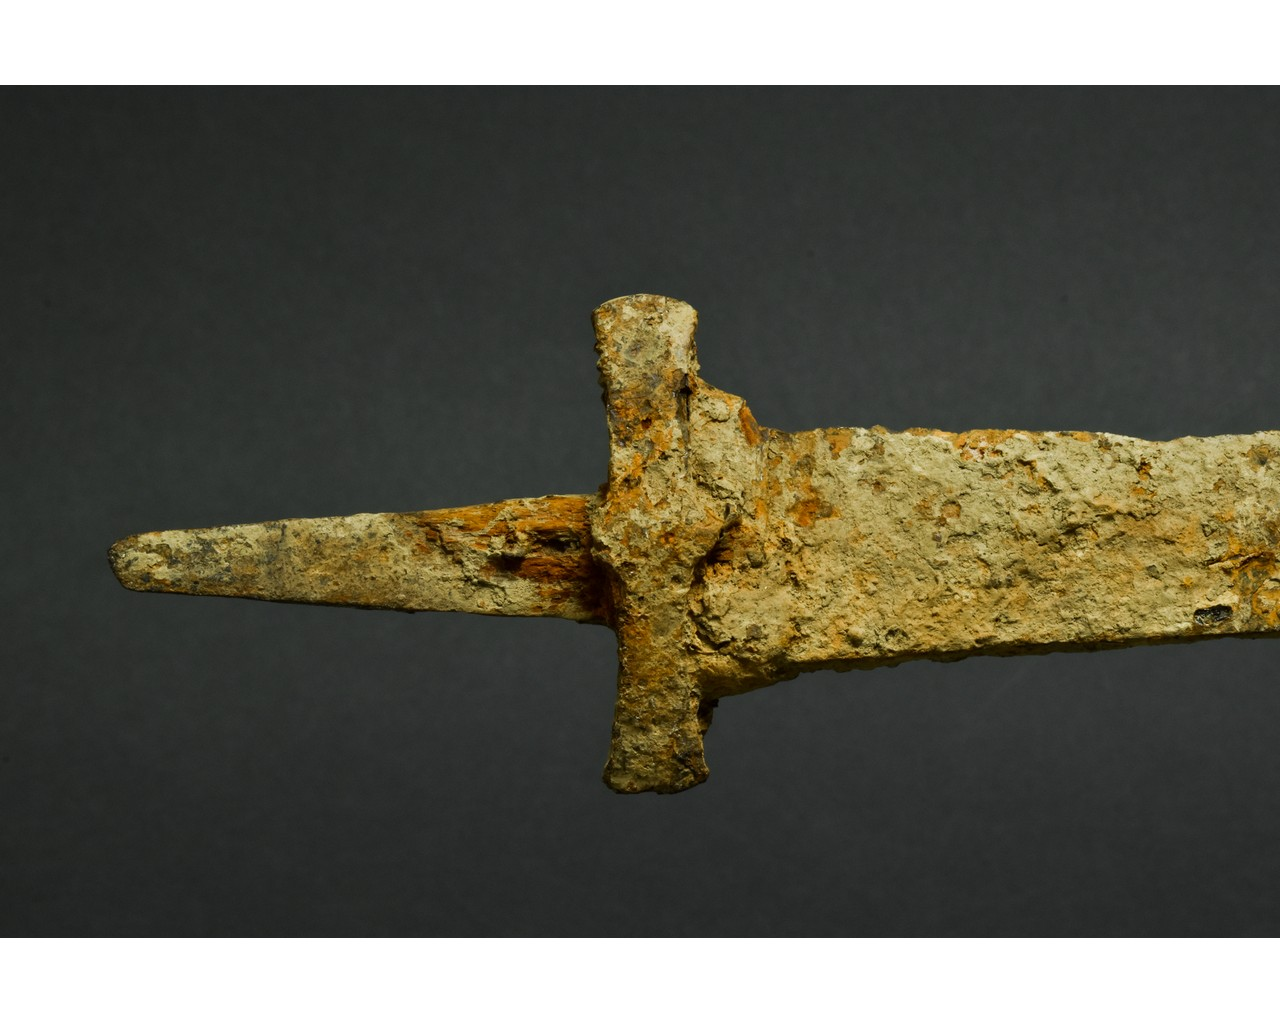 MEDIEVAL MIGRATION PERIOD IRON SWORD - Image 3 of 4